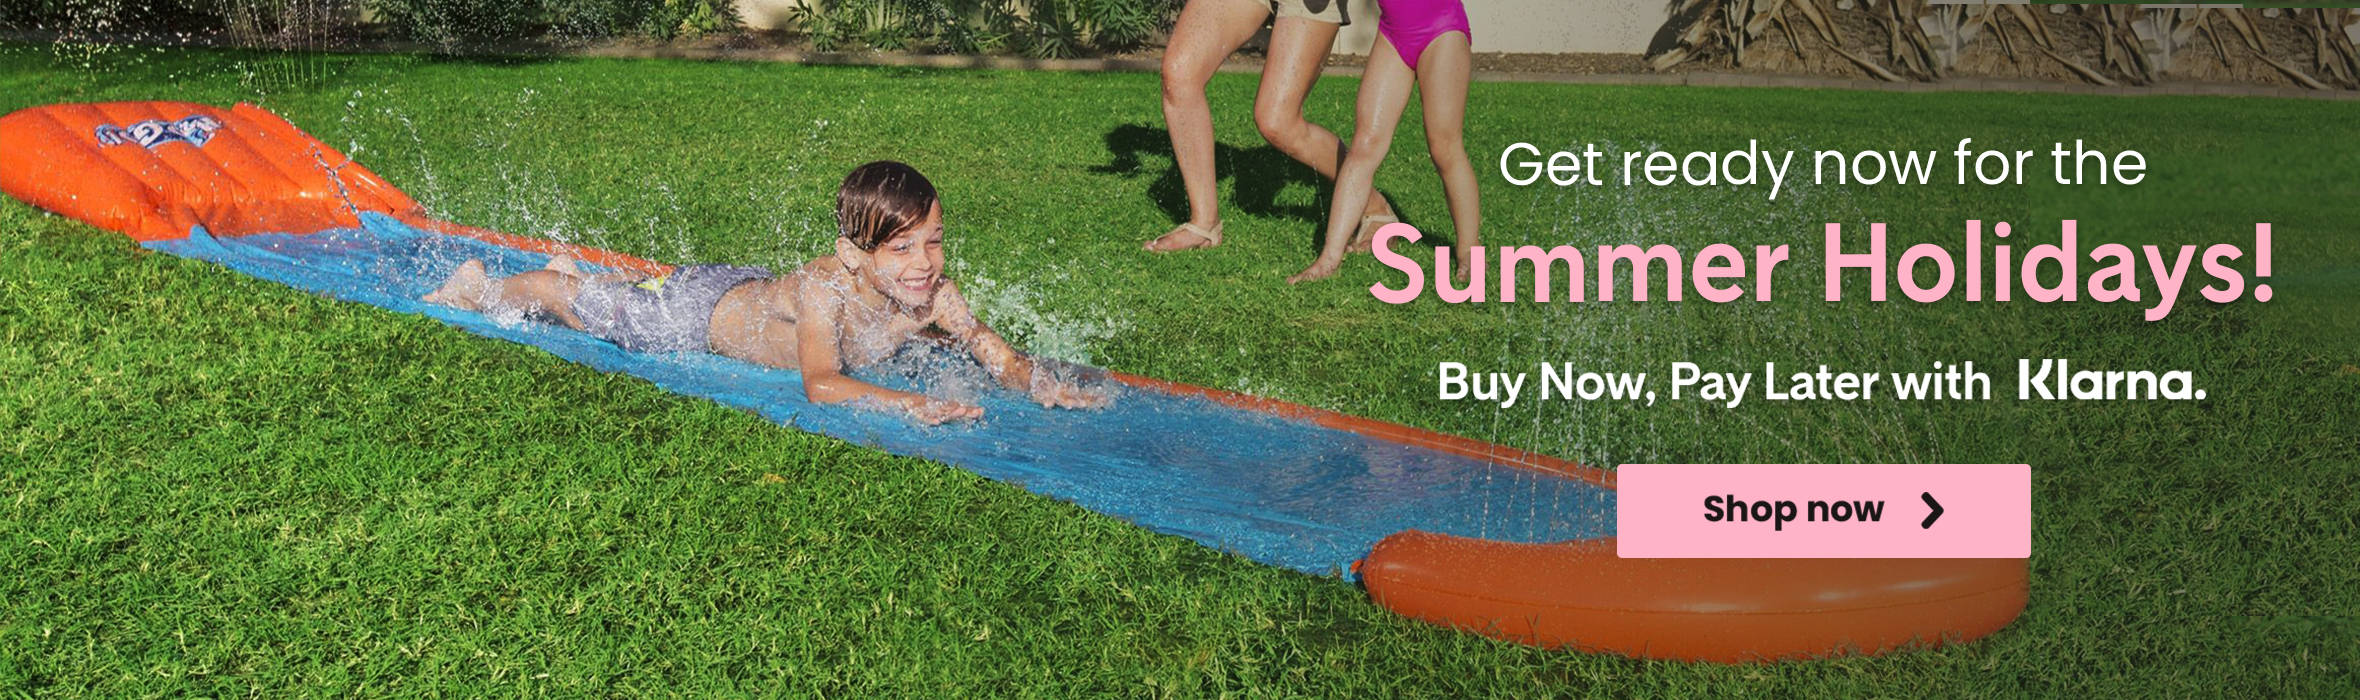 Get ready now for the summer holidays!